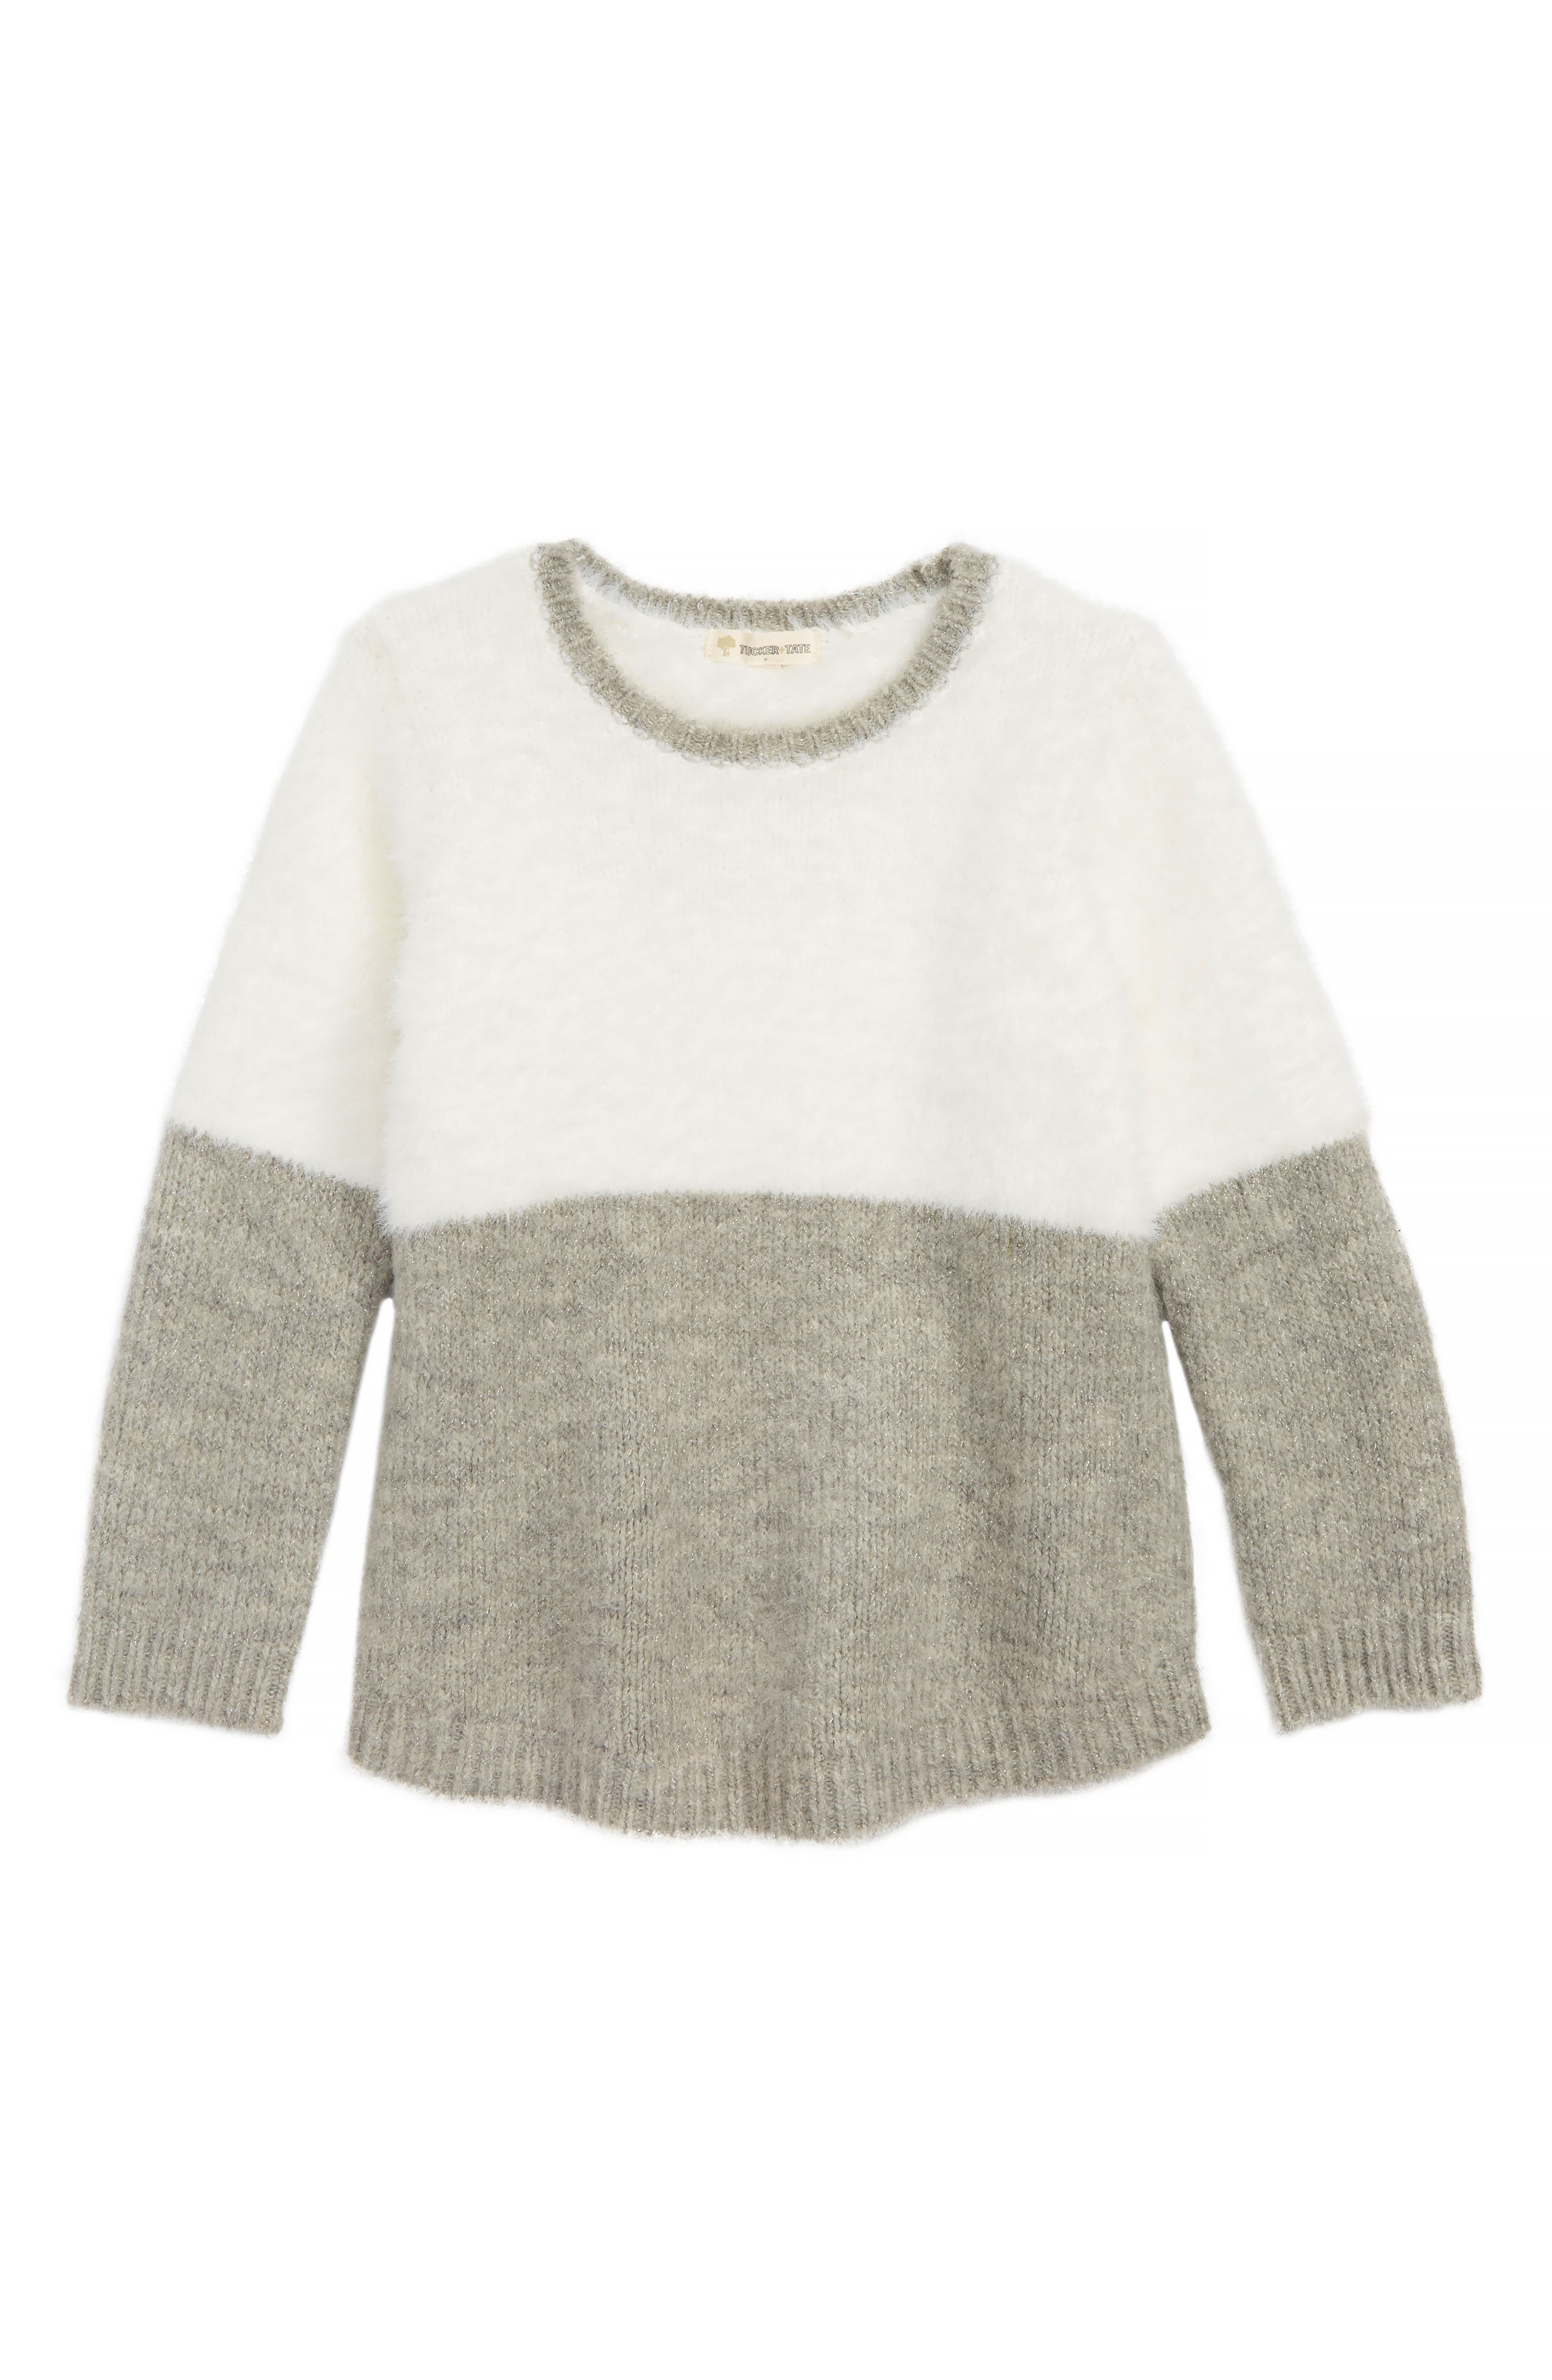 Fuzzy Colorblock Sweater,                             Main thumbnail 1, color,                             IVORY EGRET- GREY